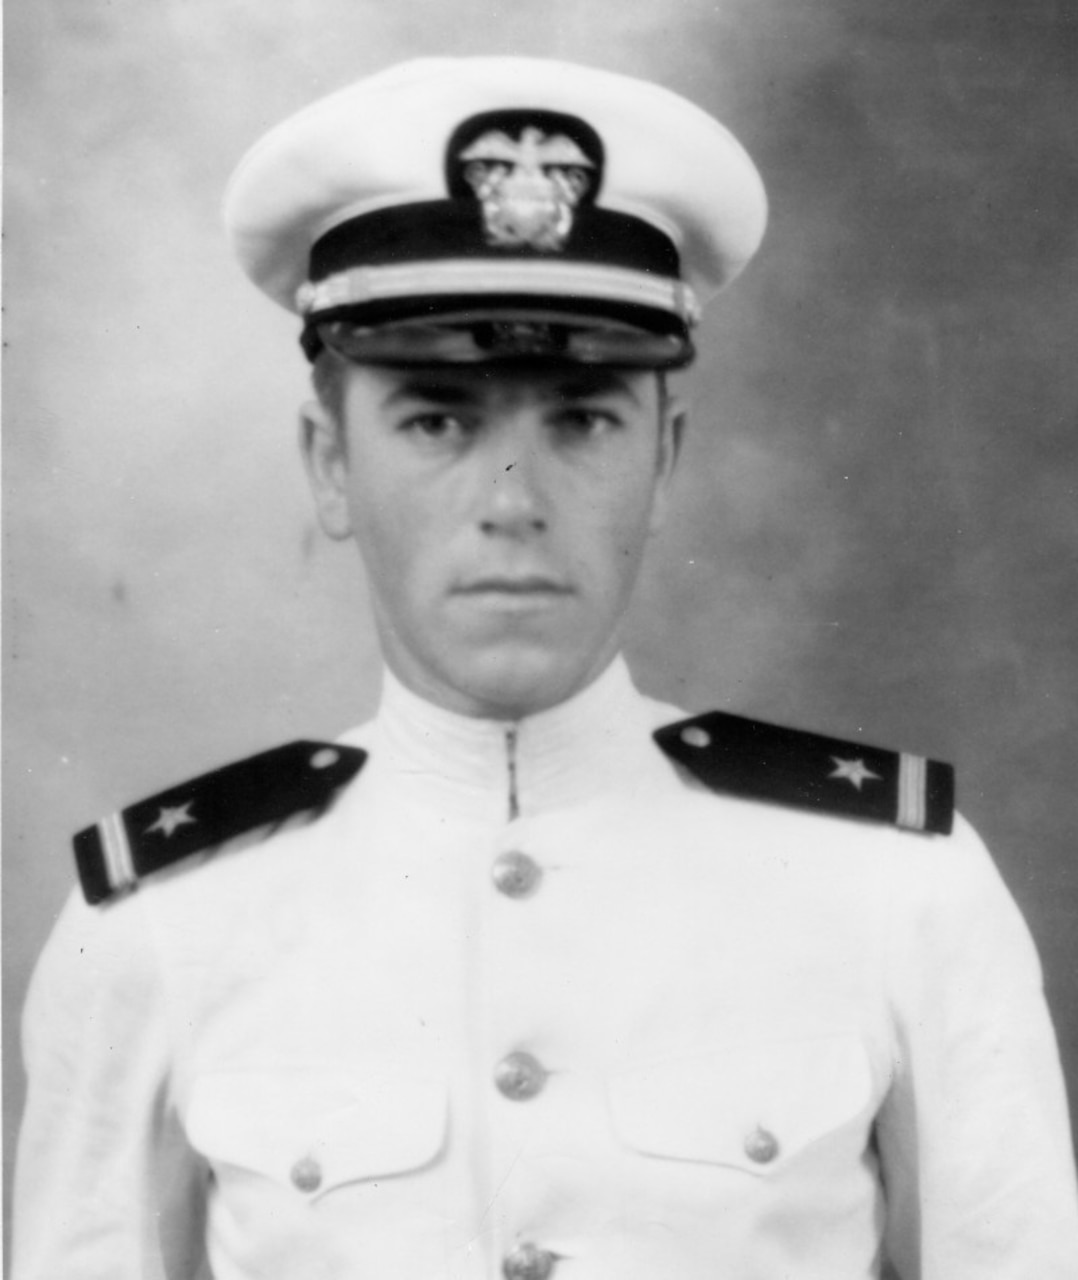 A young sailor in his white dress uniform and cap looks forward.